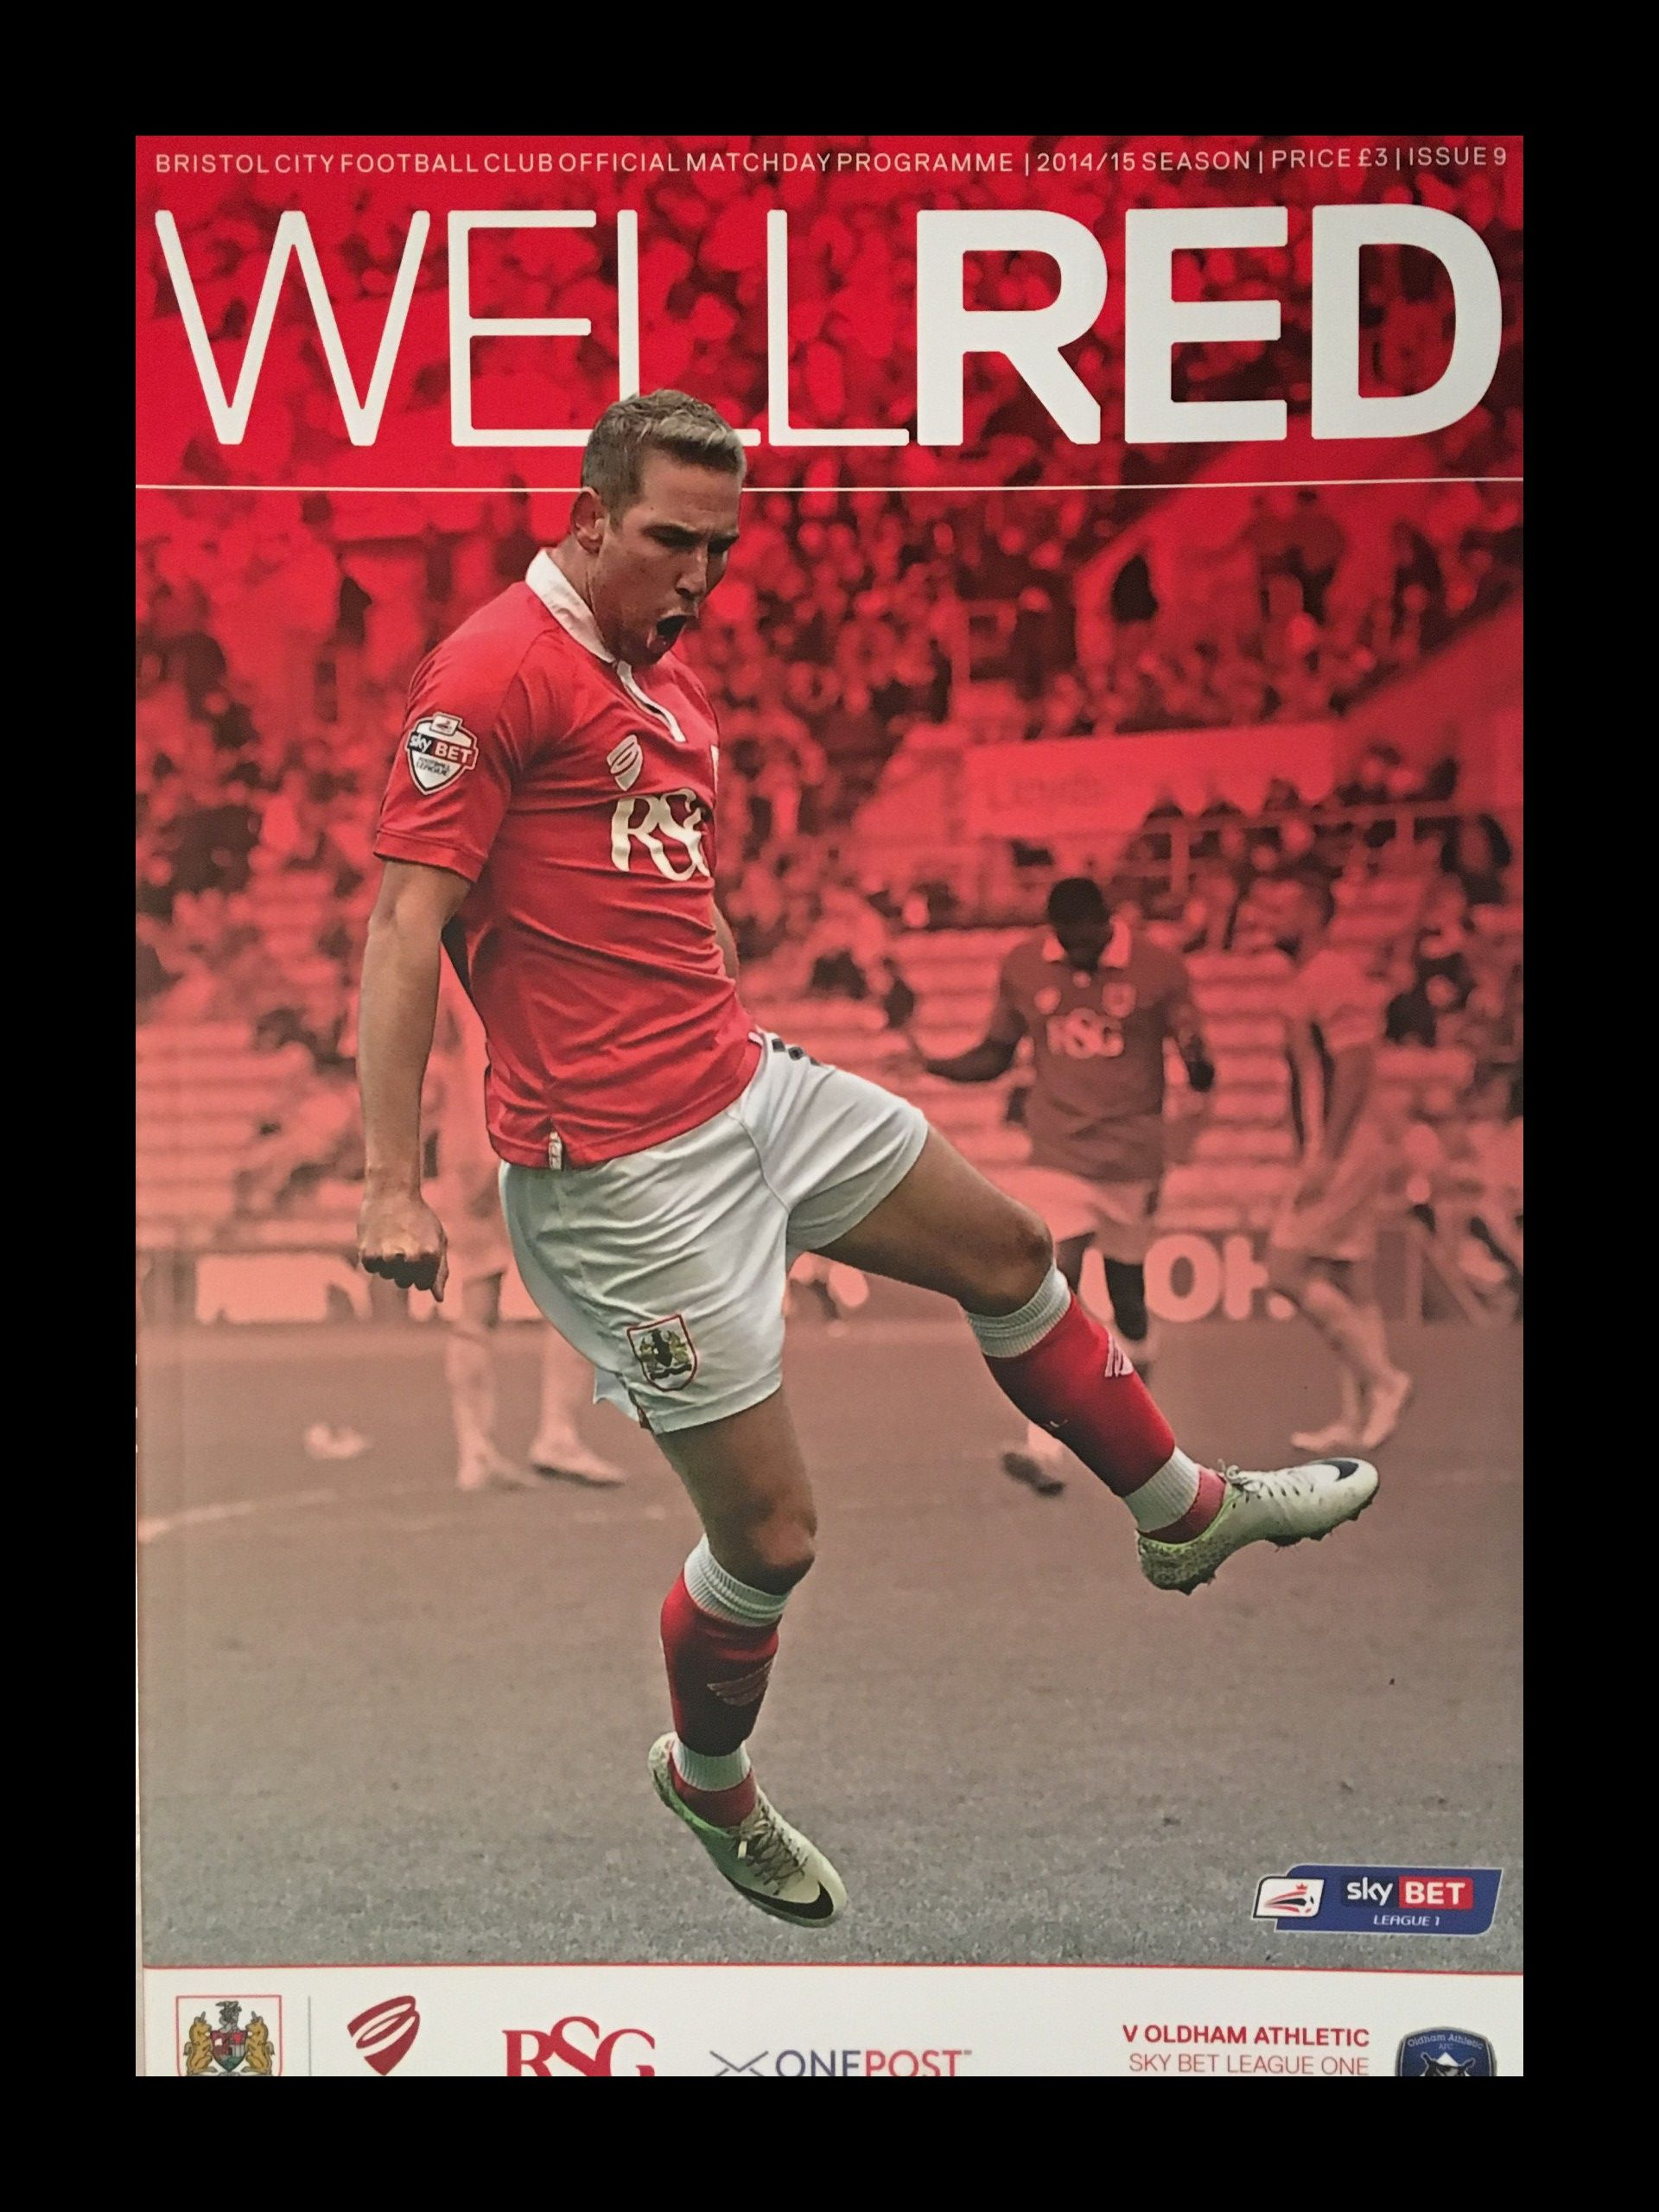 Bristol City v Oldham Athletic 01-11-2014 Programme